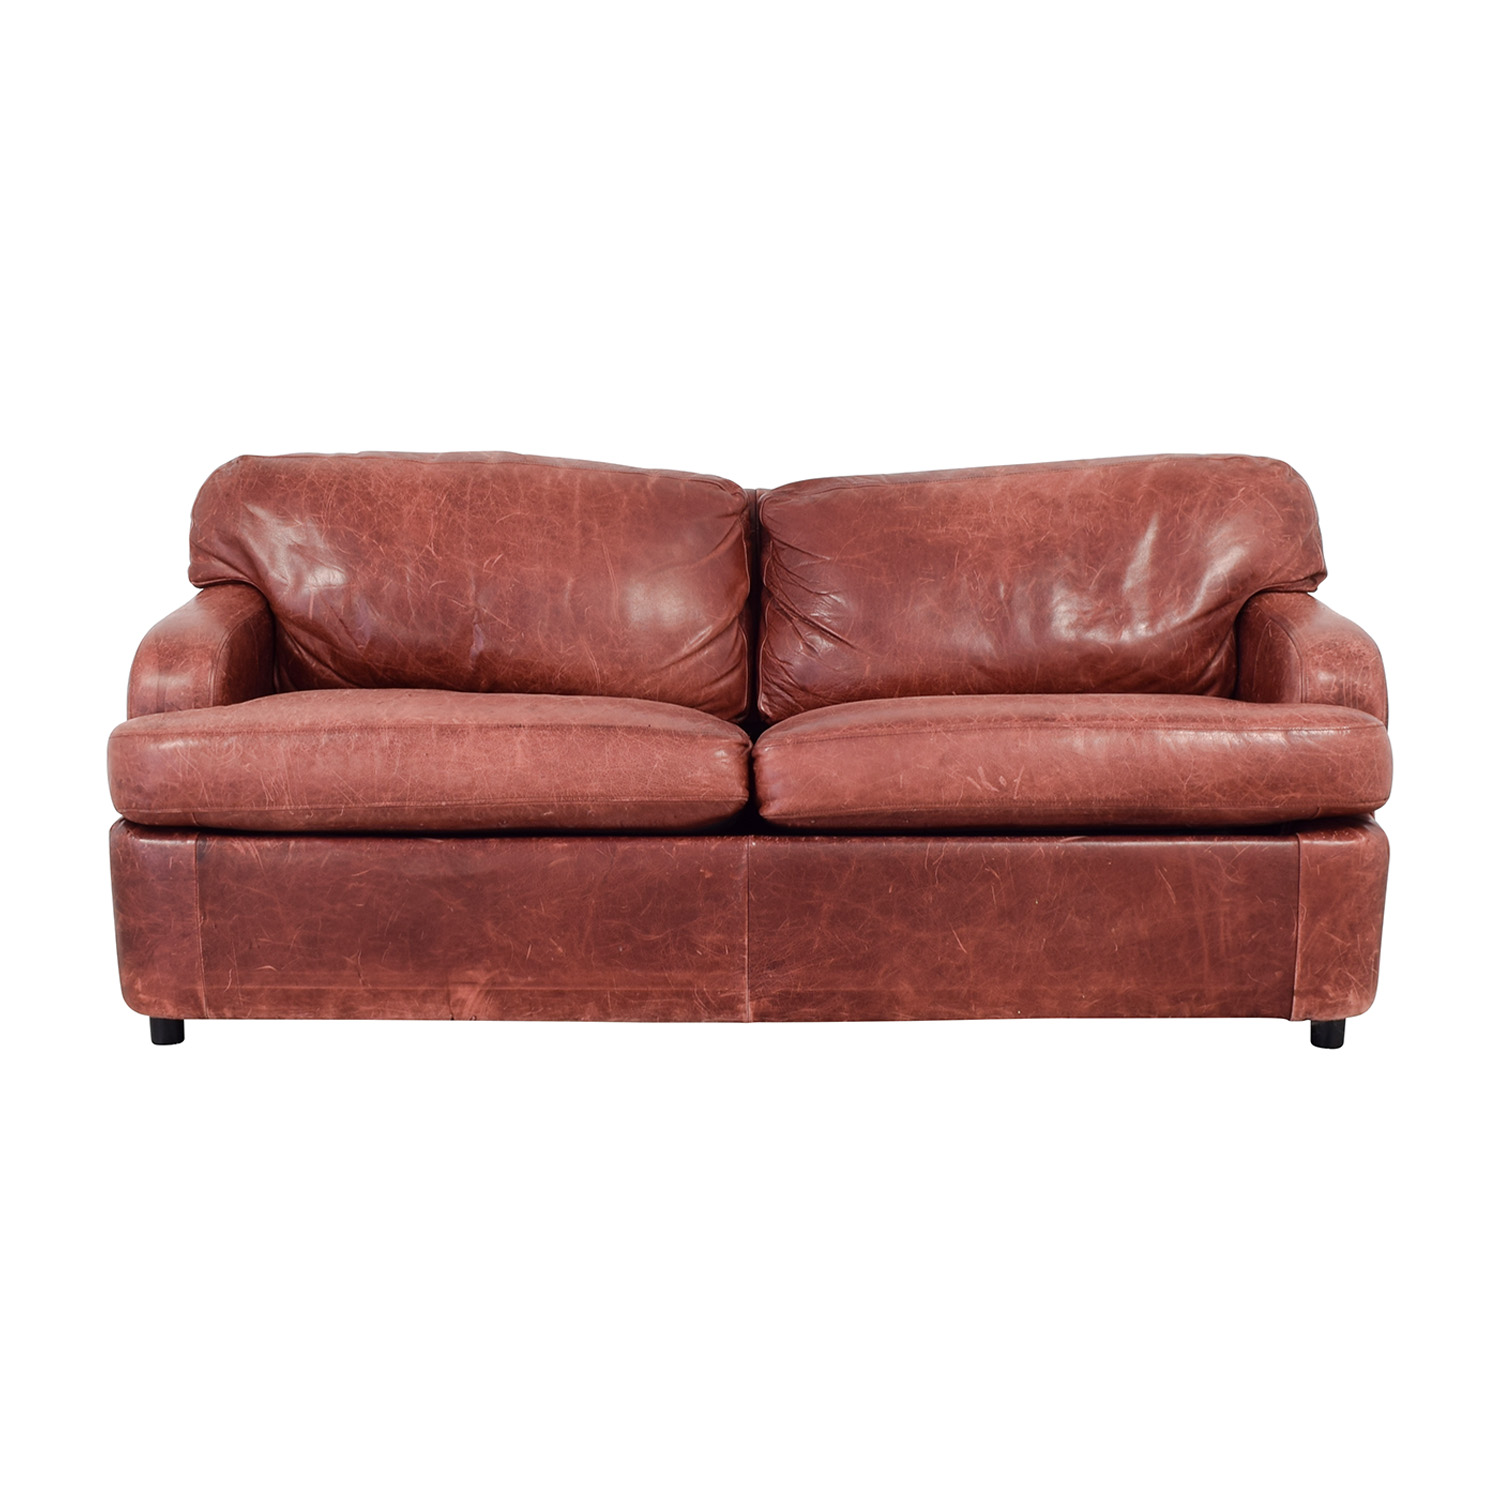 76% OFF - Leather Sleeper Sofa / Sofas